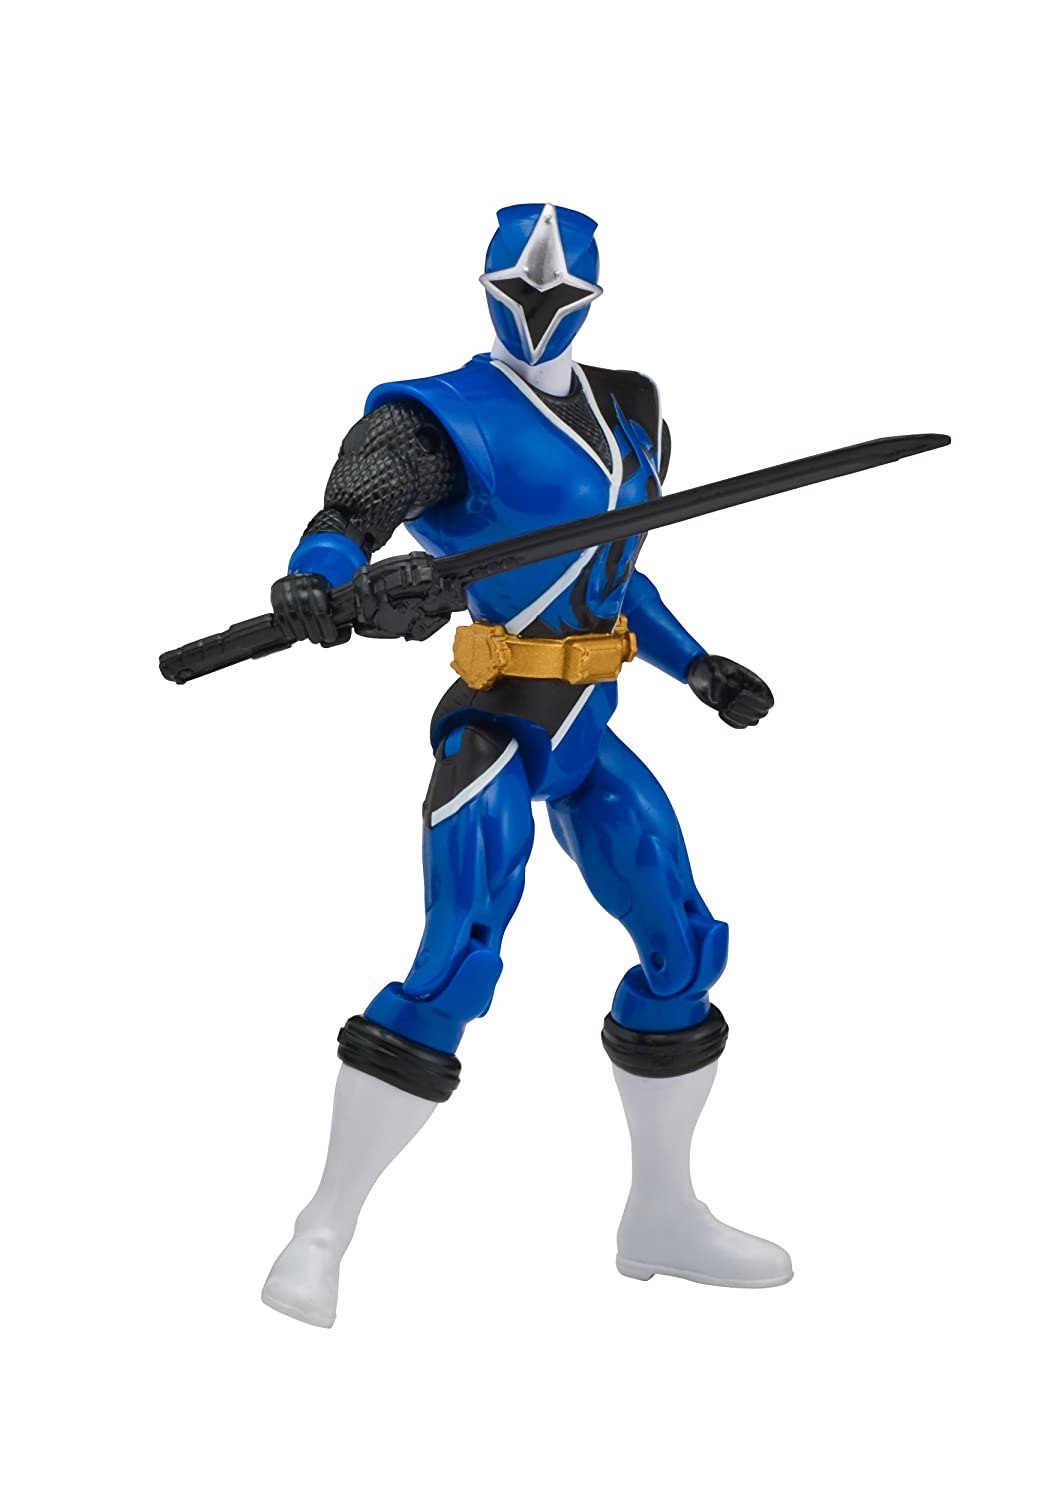 bluee bluee bluee Ranger Power Rangers Super Ninja Steel